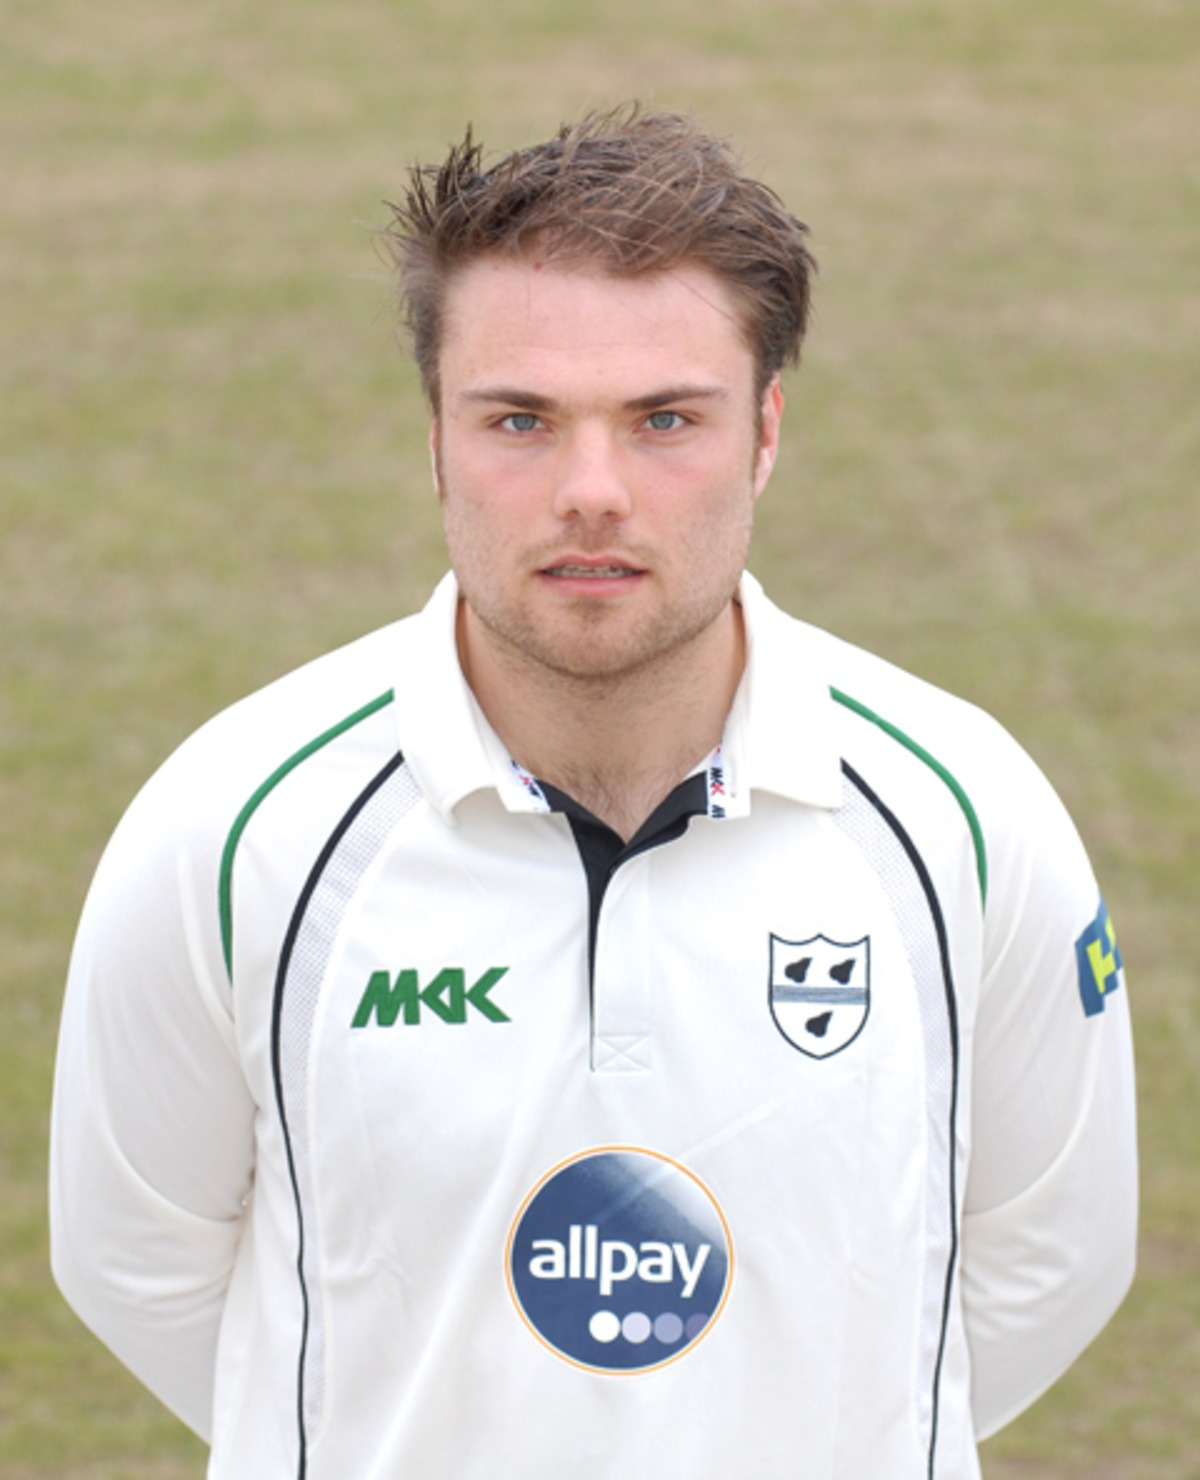 JOE LEACH: Making a good impression.